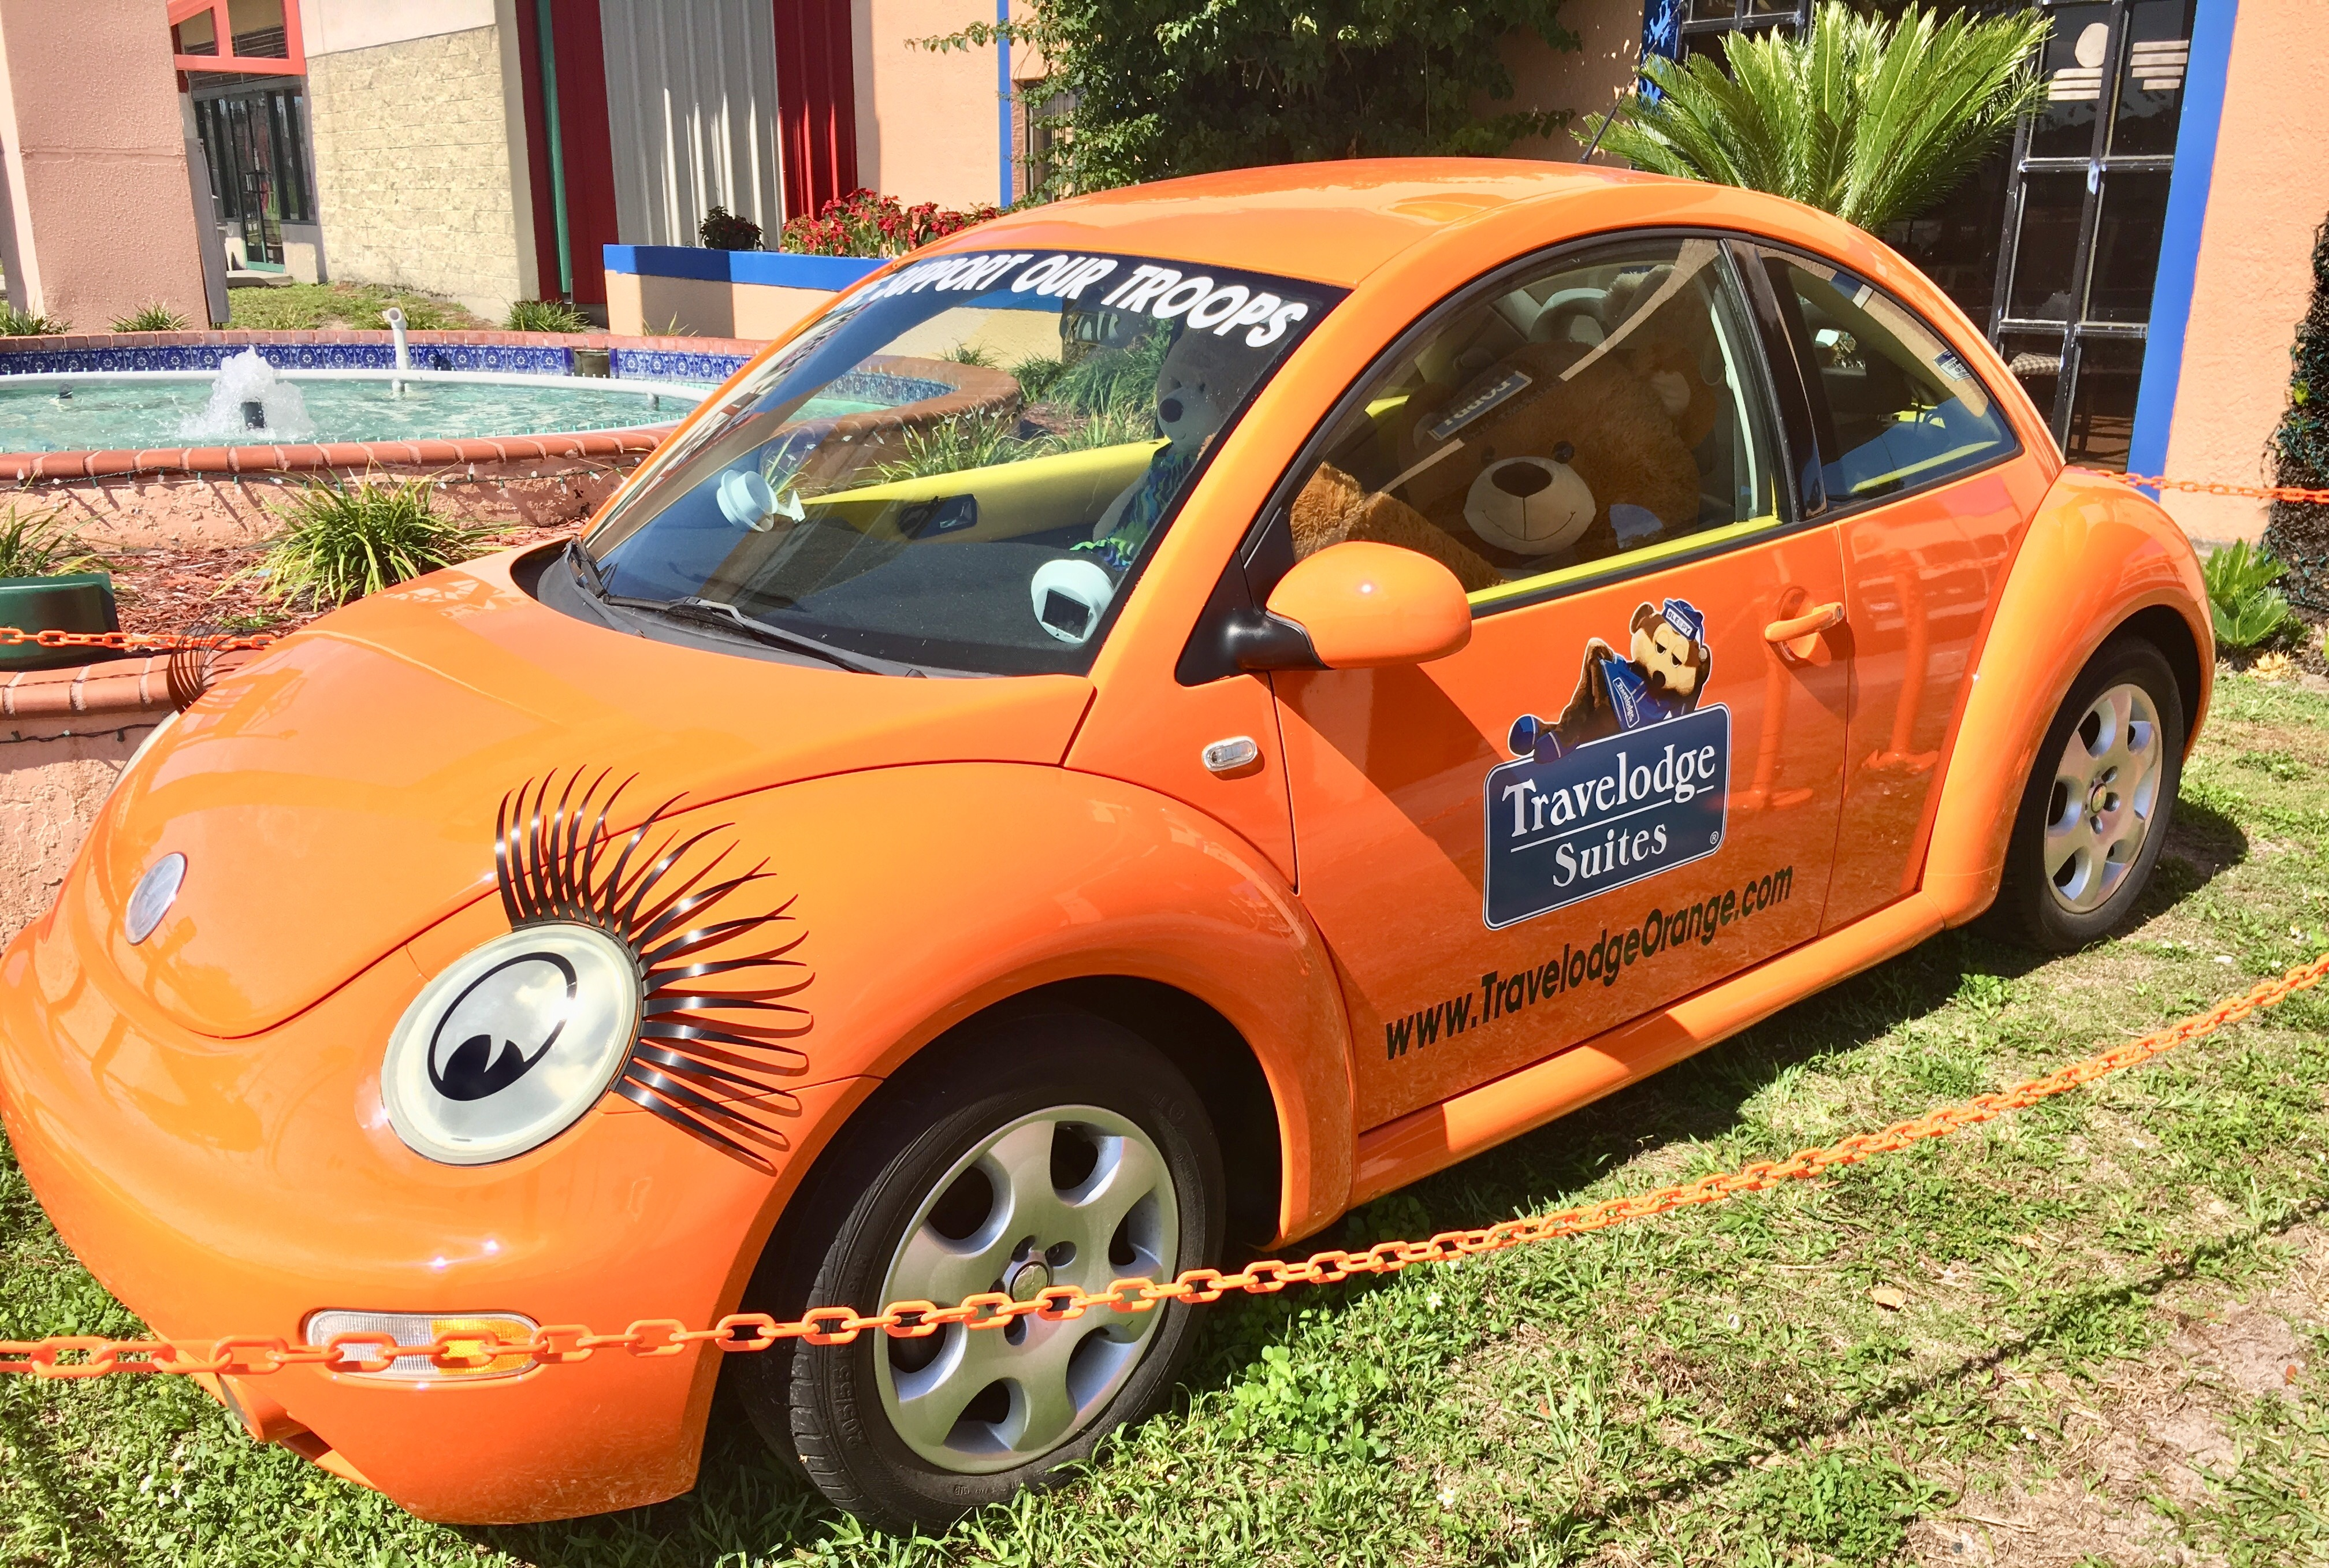 Parked in front of the Travelodge is a bright orange Volkswagen Beetle